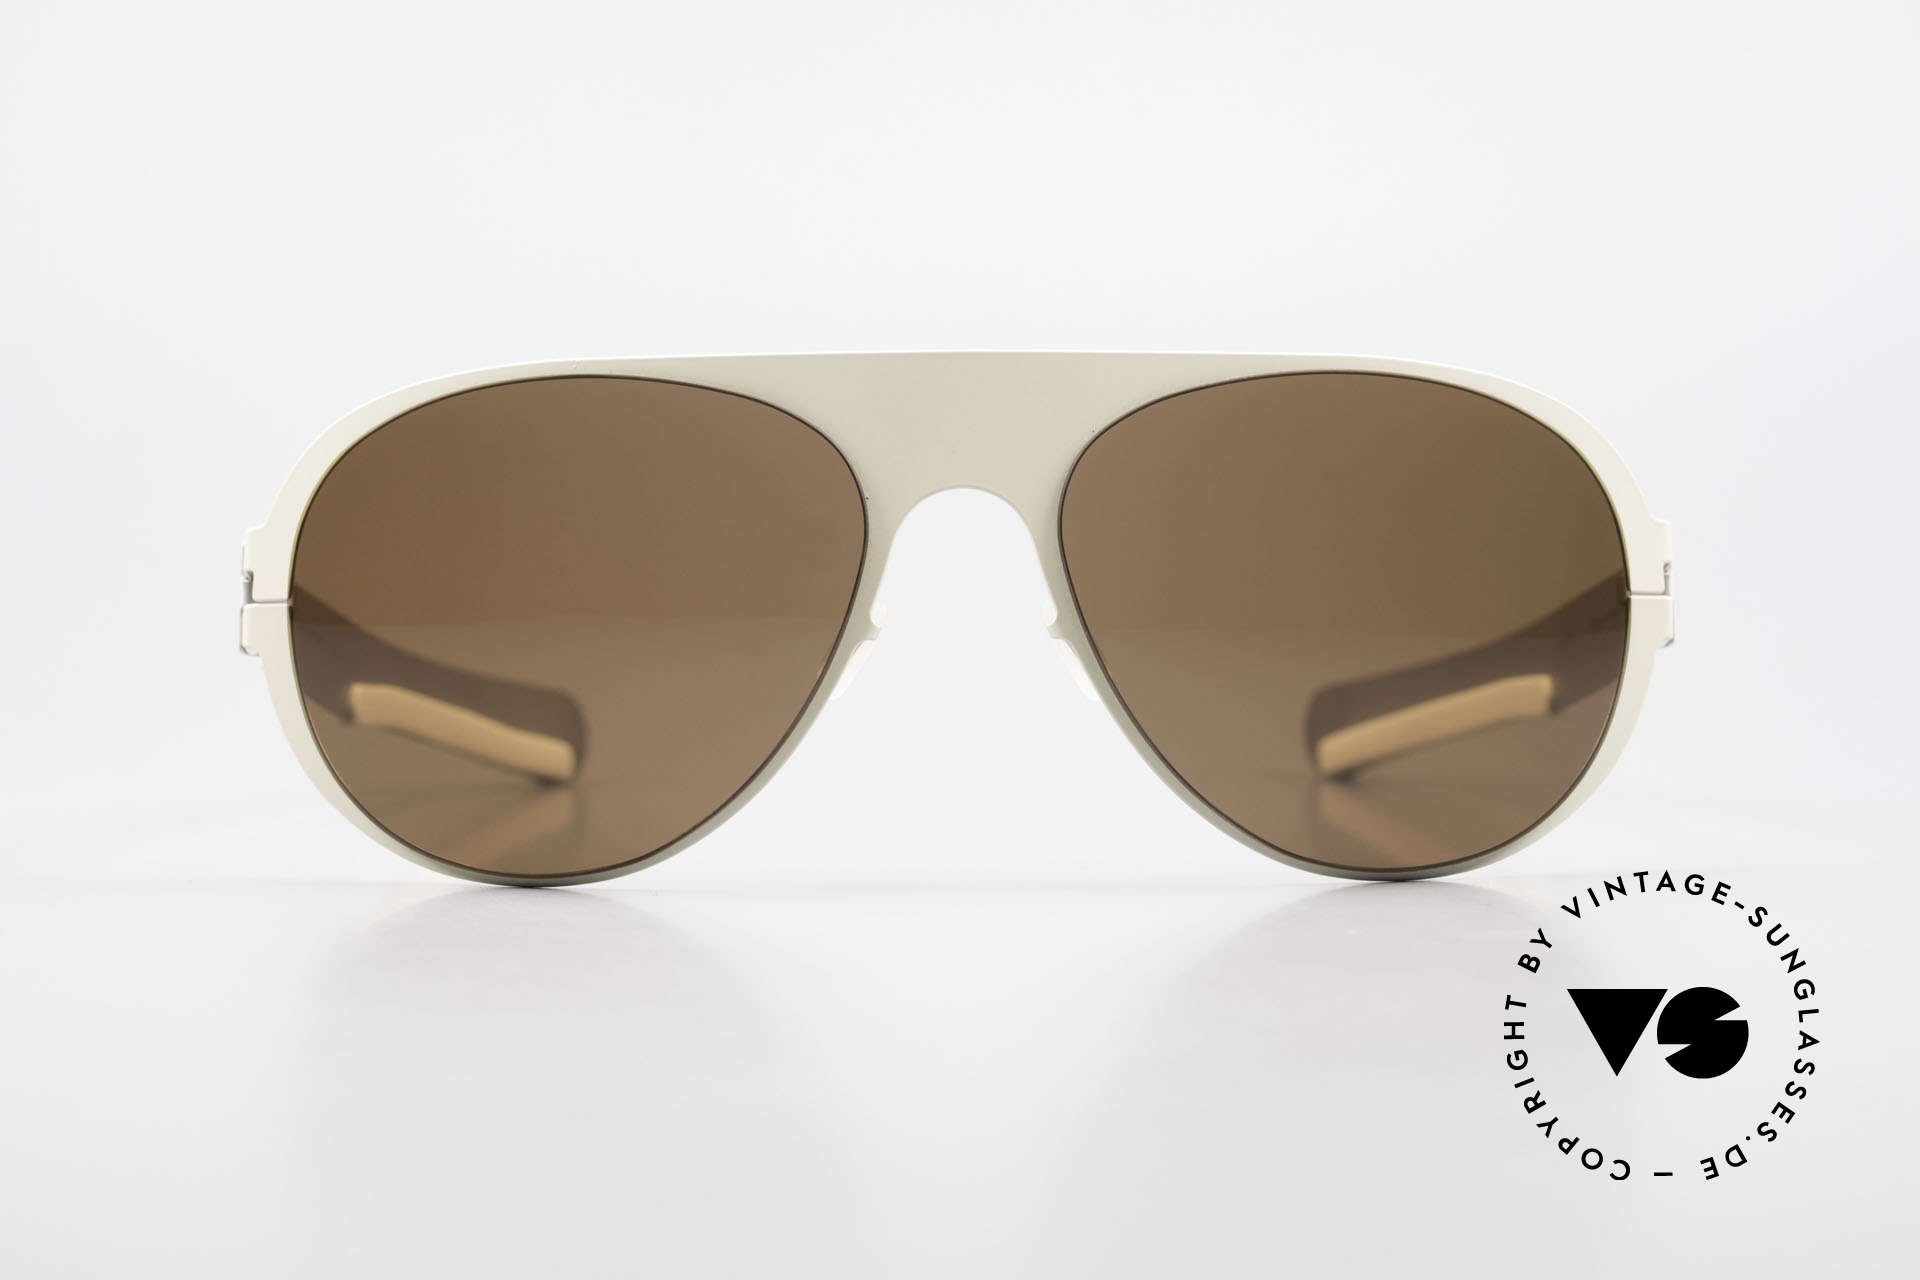 Mykita Winston Limited Designer Sunglasses, MYKITA: the youngest brand in our vintage collection, Made for Men